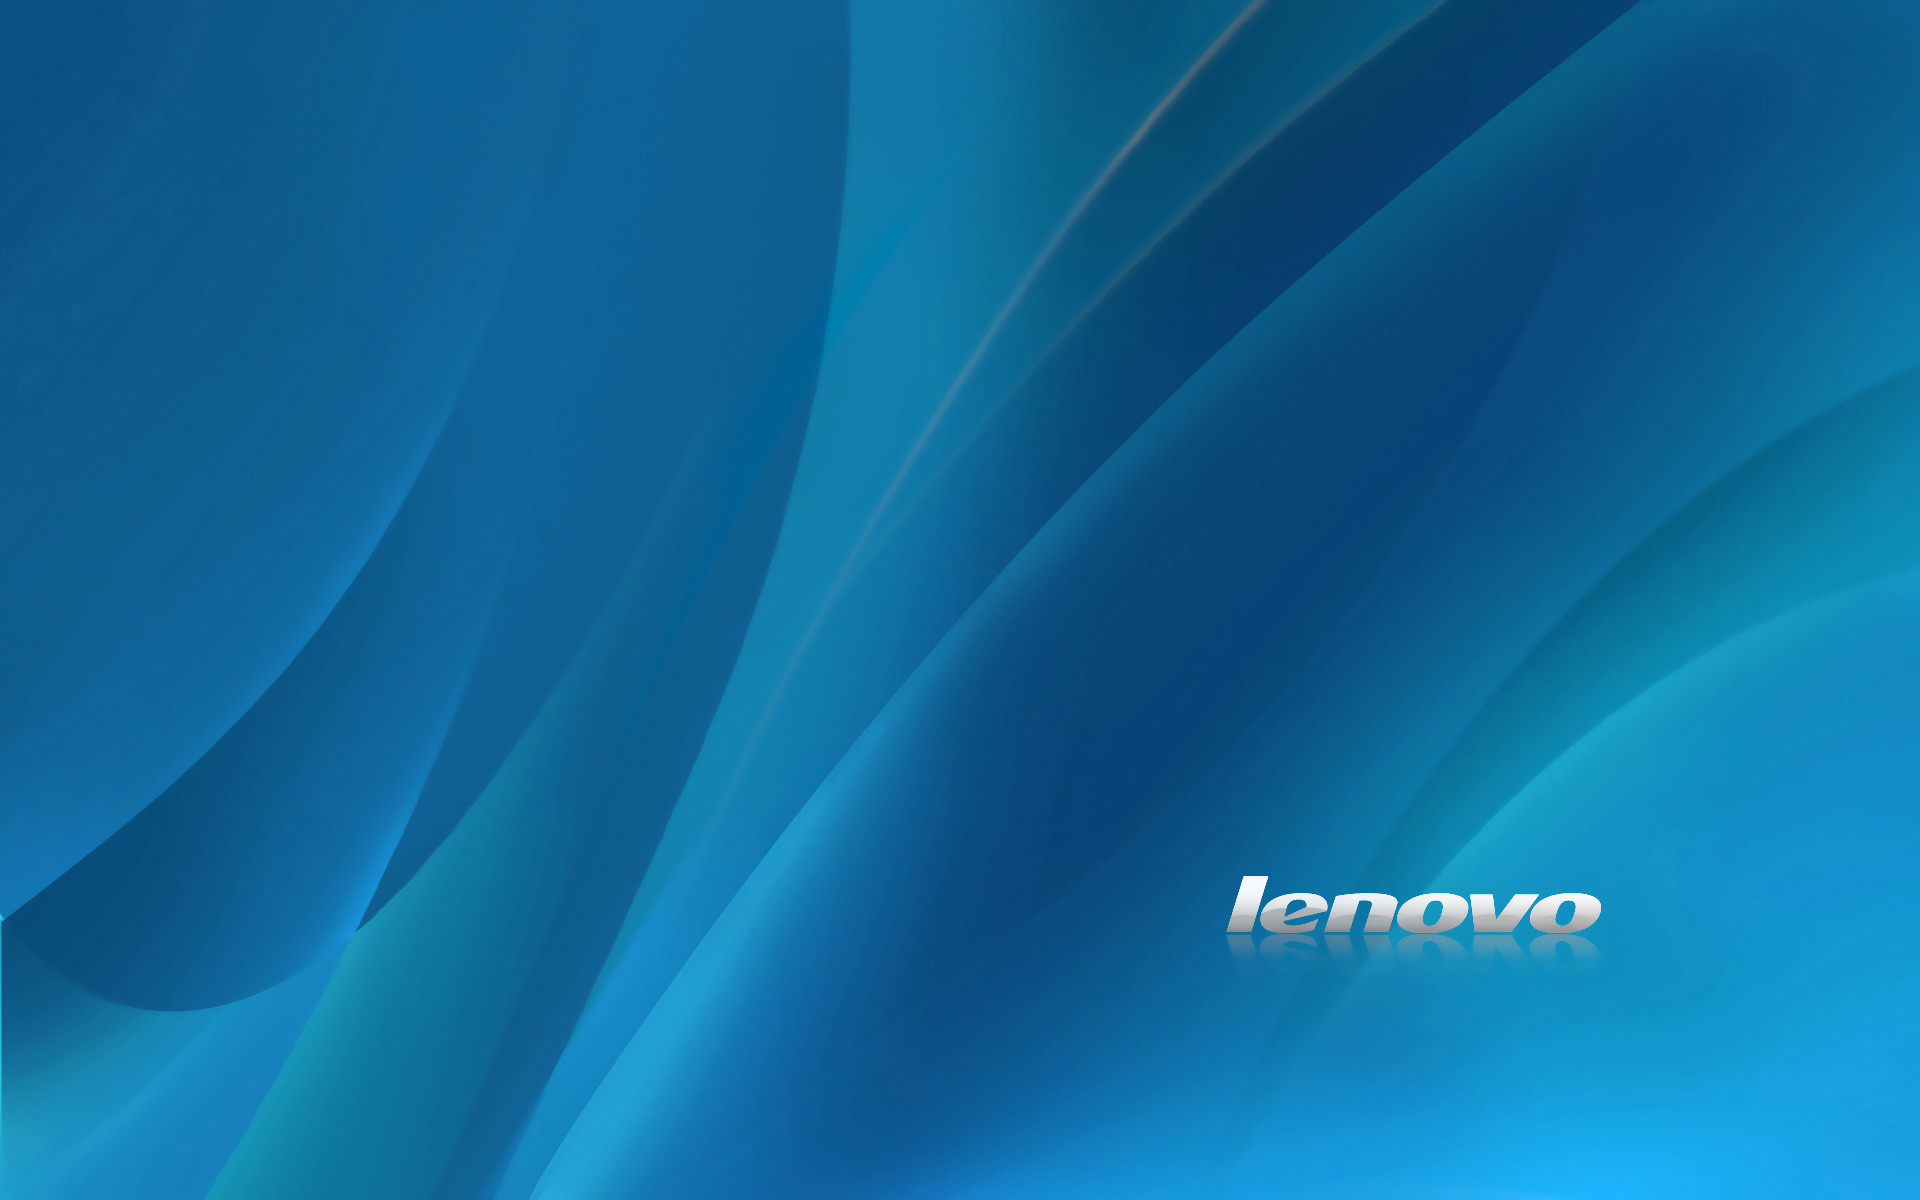 1920x1200 Full HD Pictures Lenovo 270.53 KB